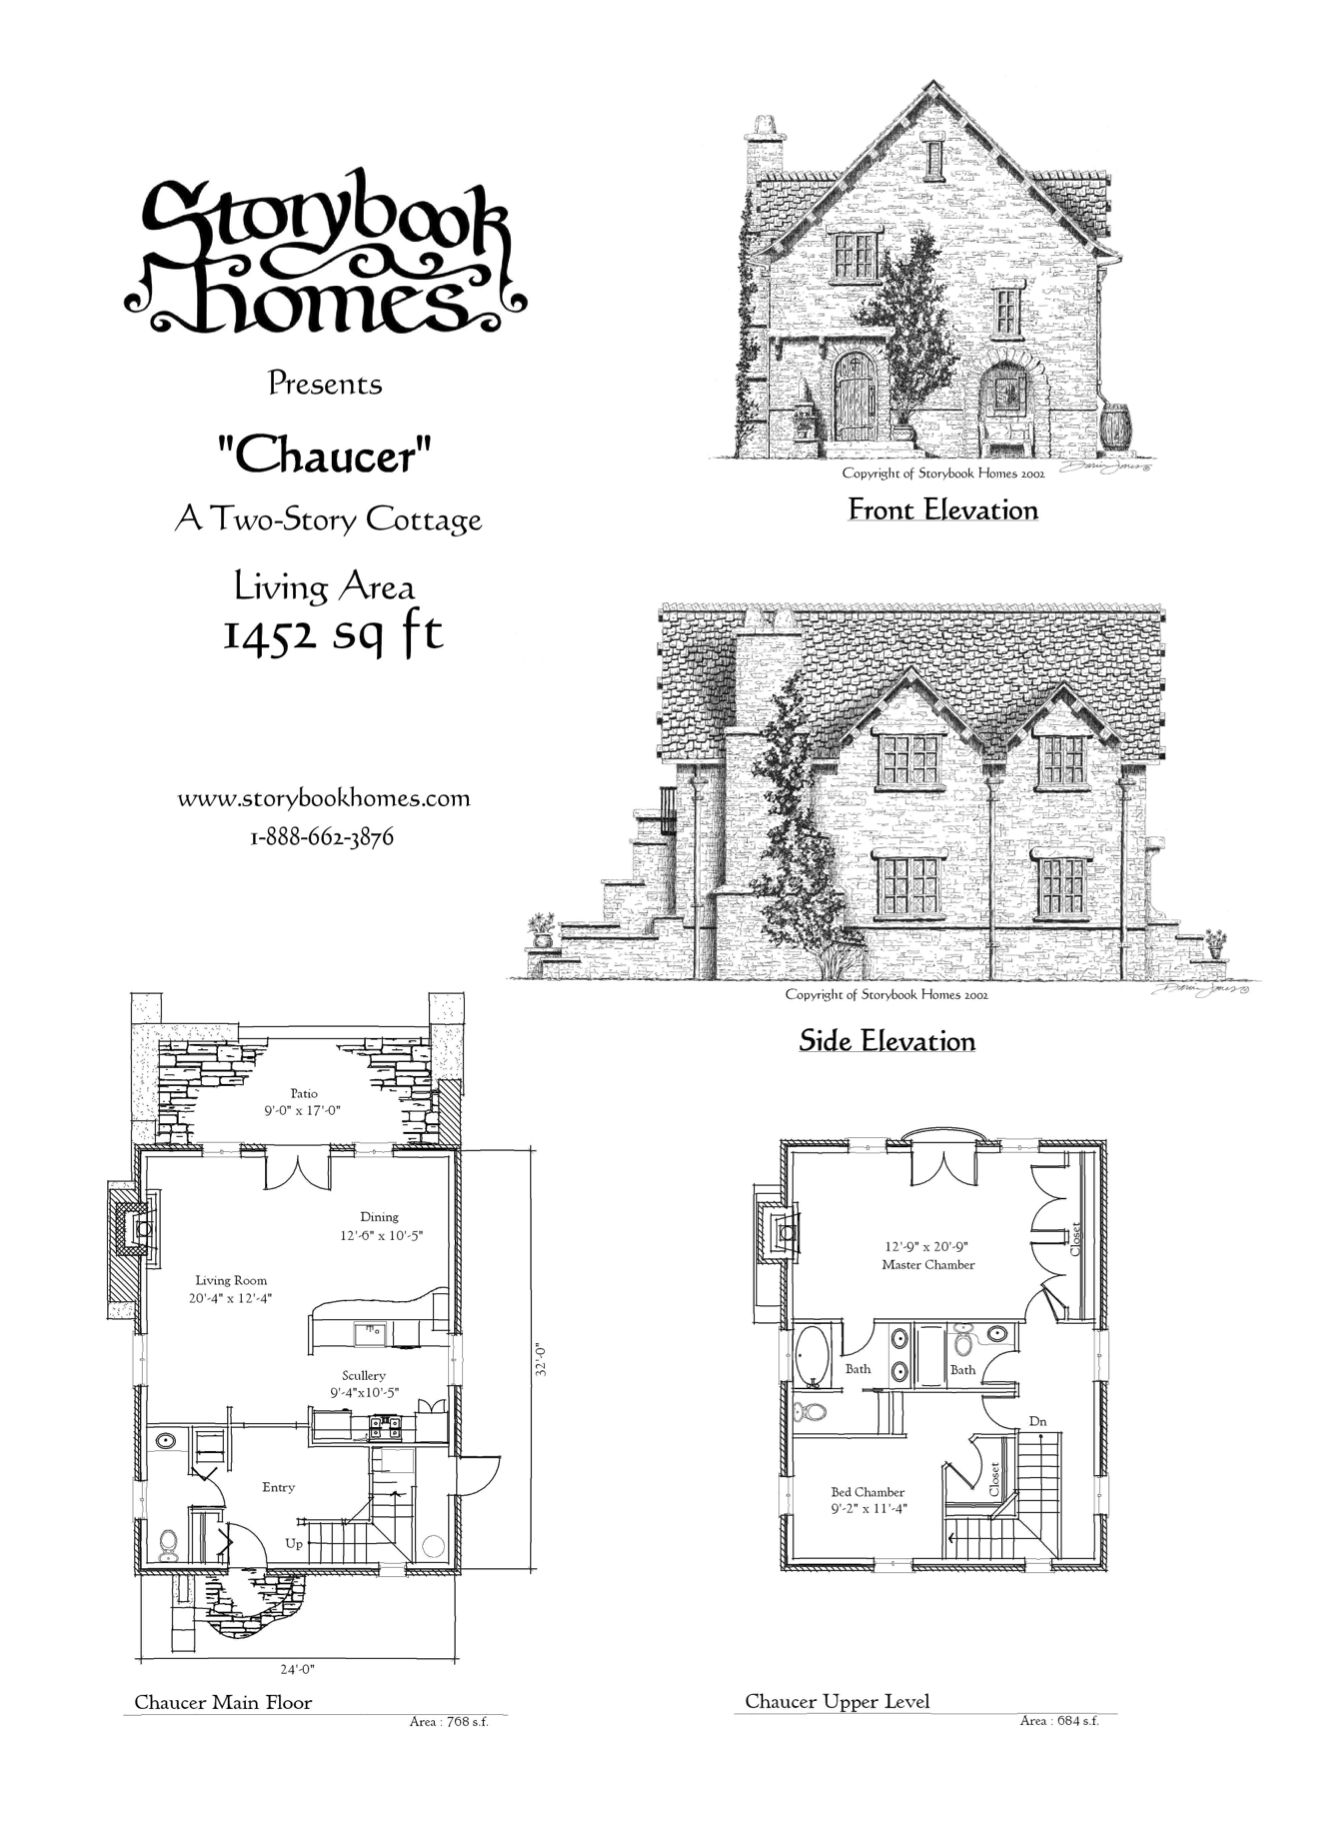 Chaucer Houseplan Via Storybook Homes Storybook House Plan Vintage House Plans Storybook Homes